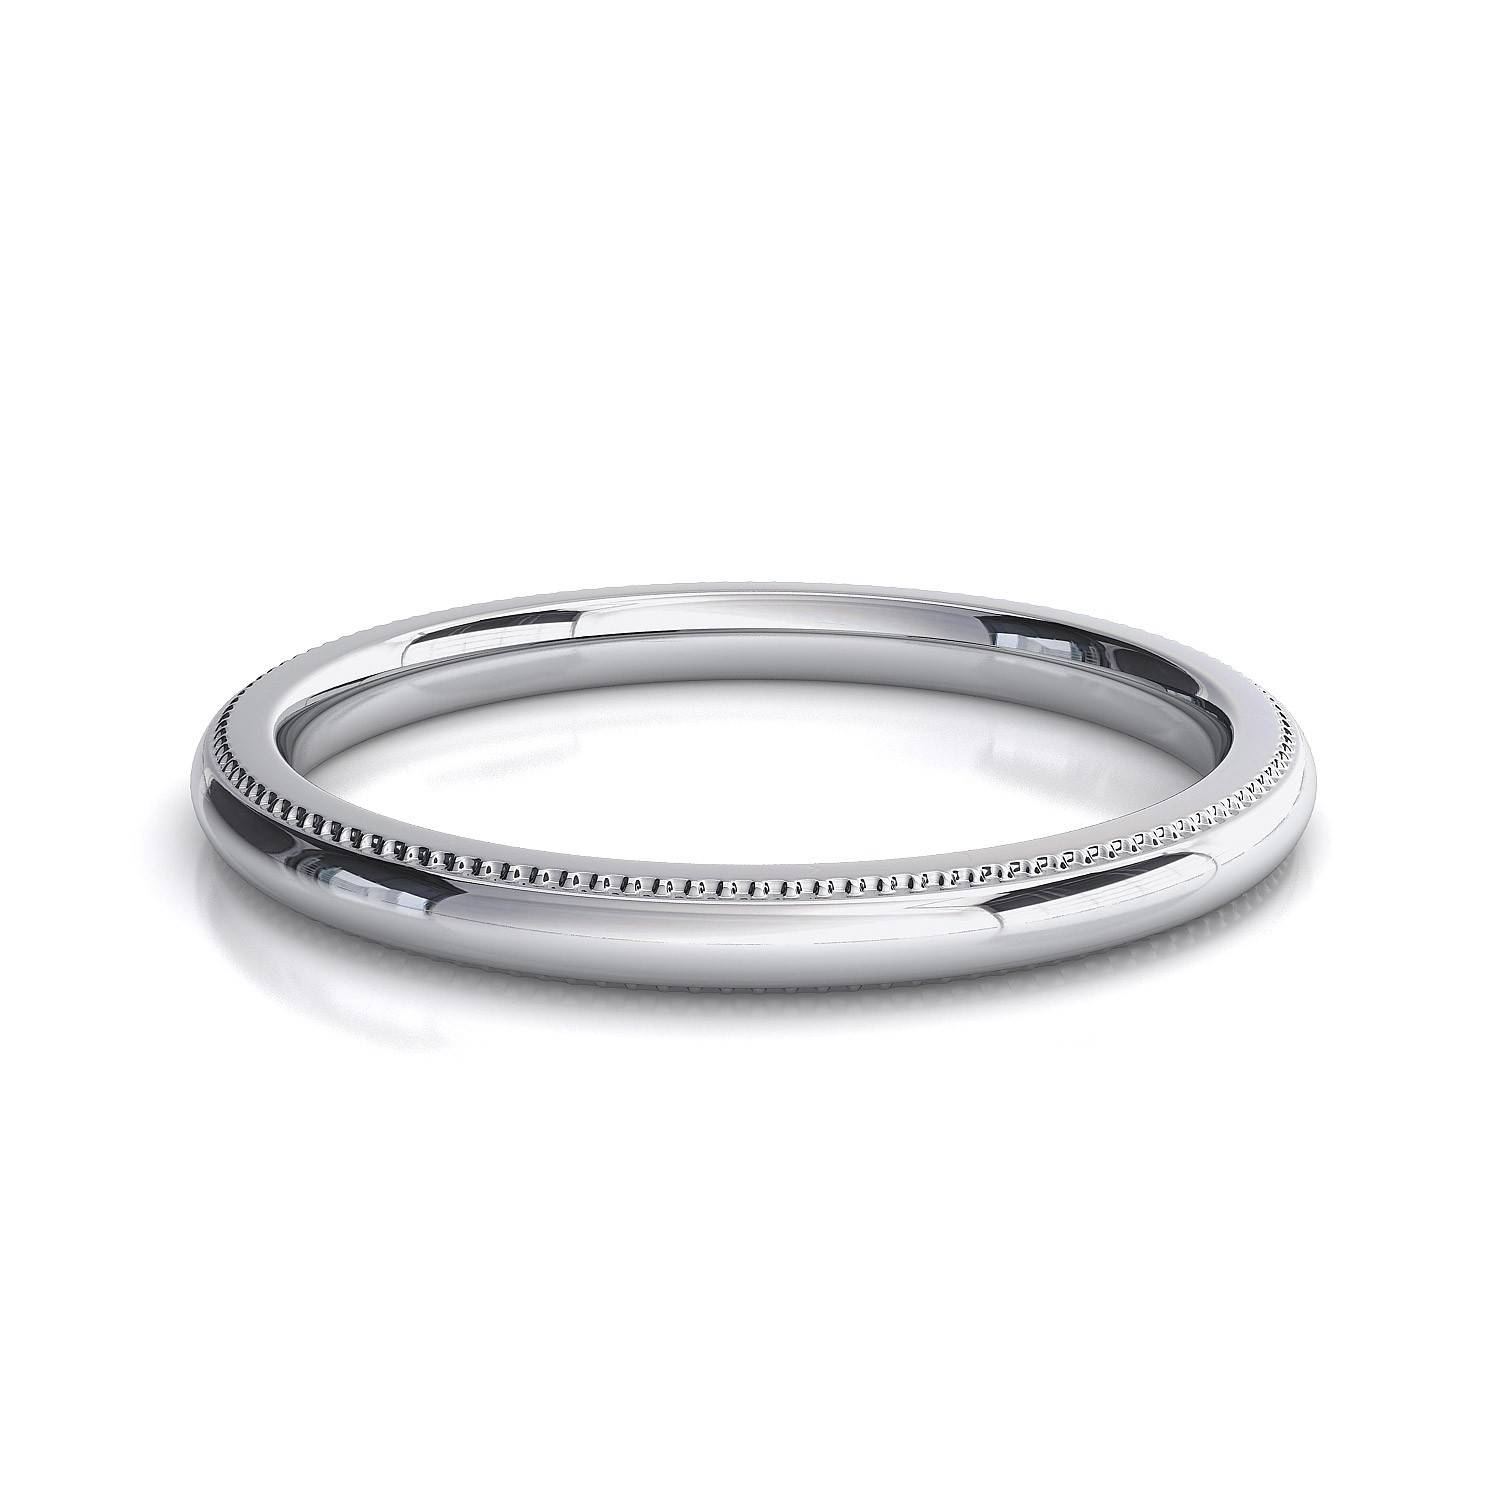 Millgrain Edge Wedding Band Toronto Custom Jewellery Regarding White Gold Plain Wedding Bands (View 11 of 15)